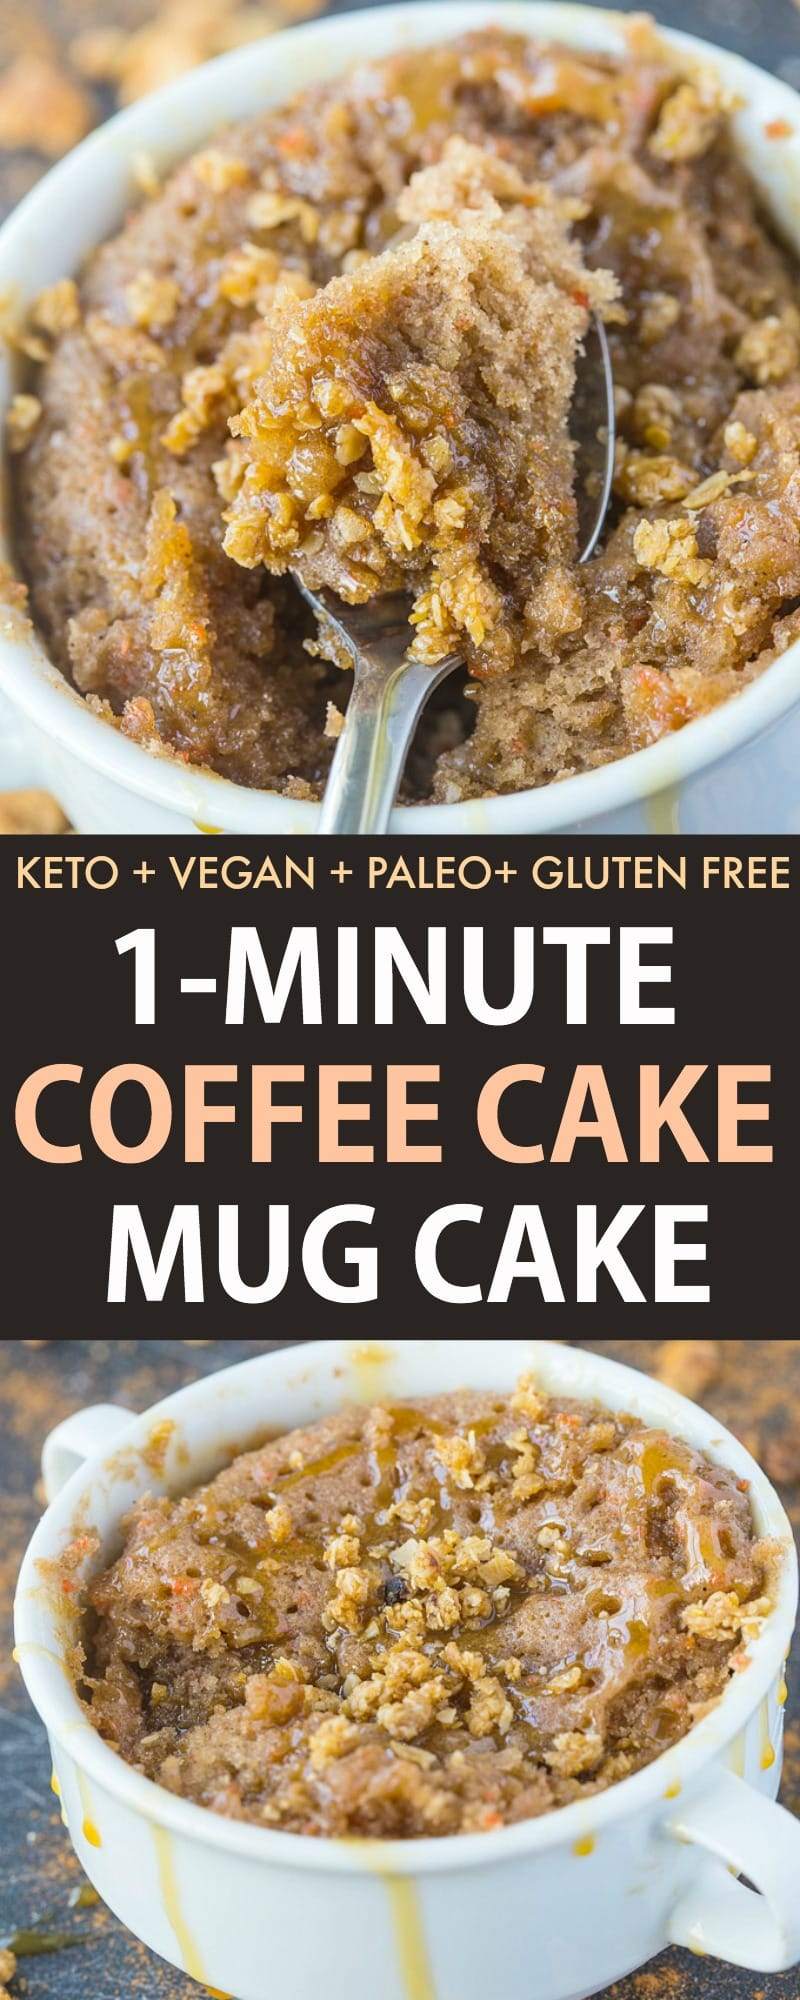 healthy single serving coffee cake in a mug. Paleo, keto and vegan